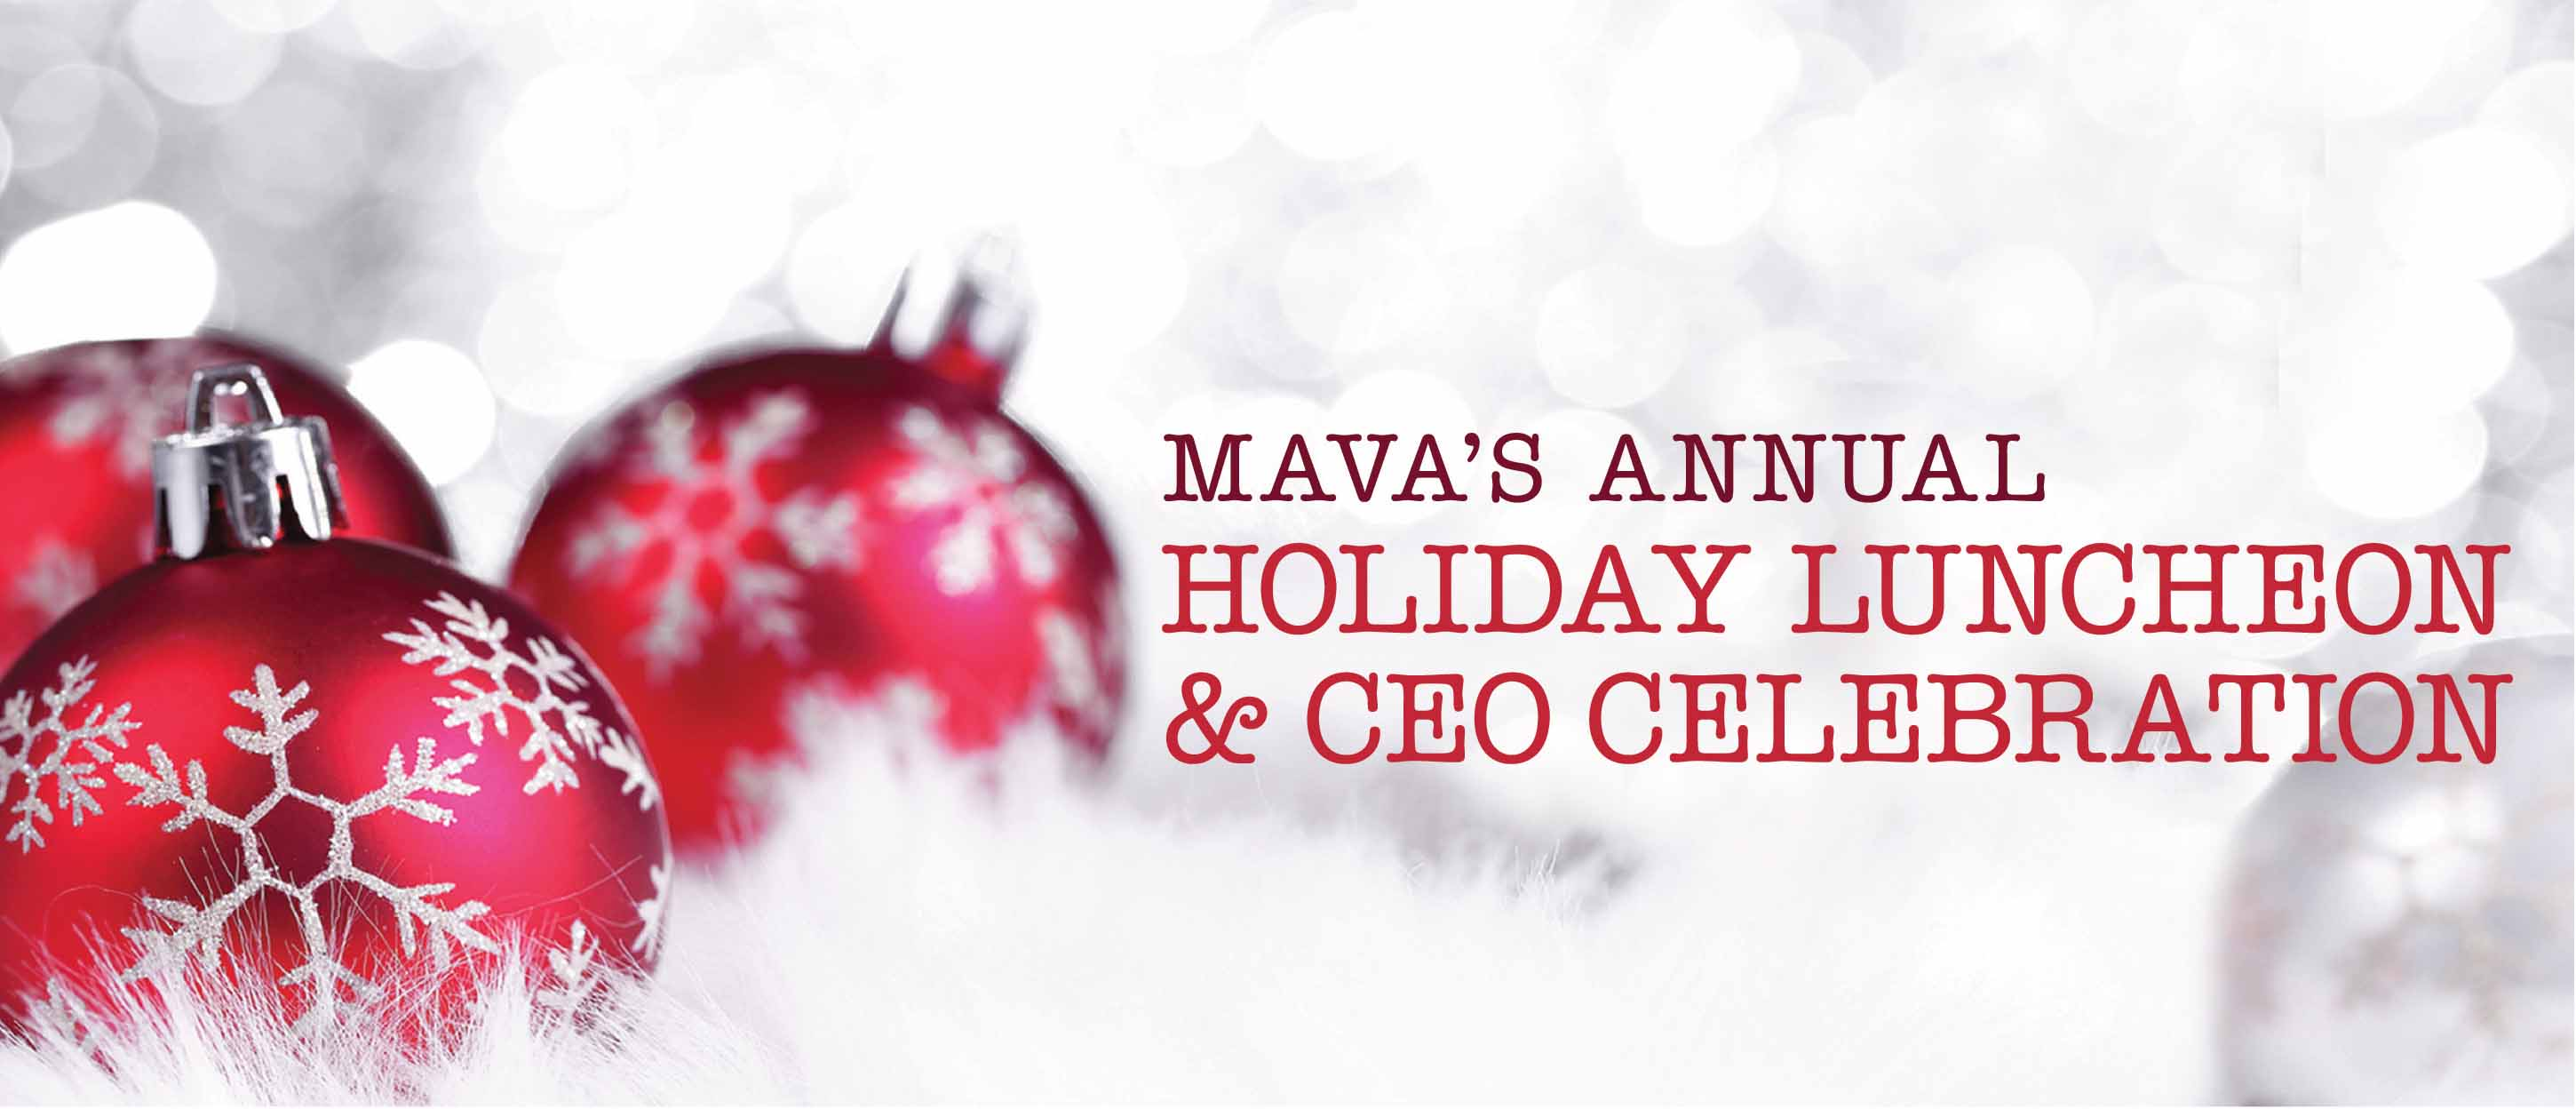 MAVA Holiday Luncheon - Dec 8, 2016